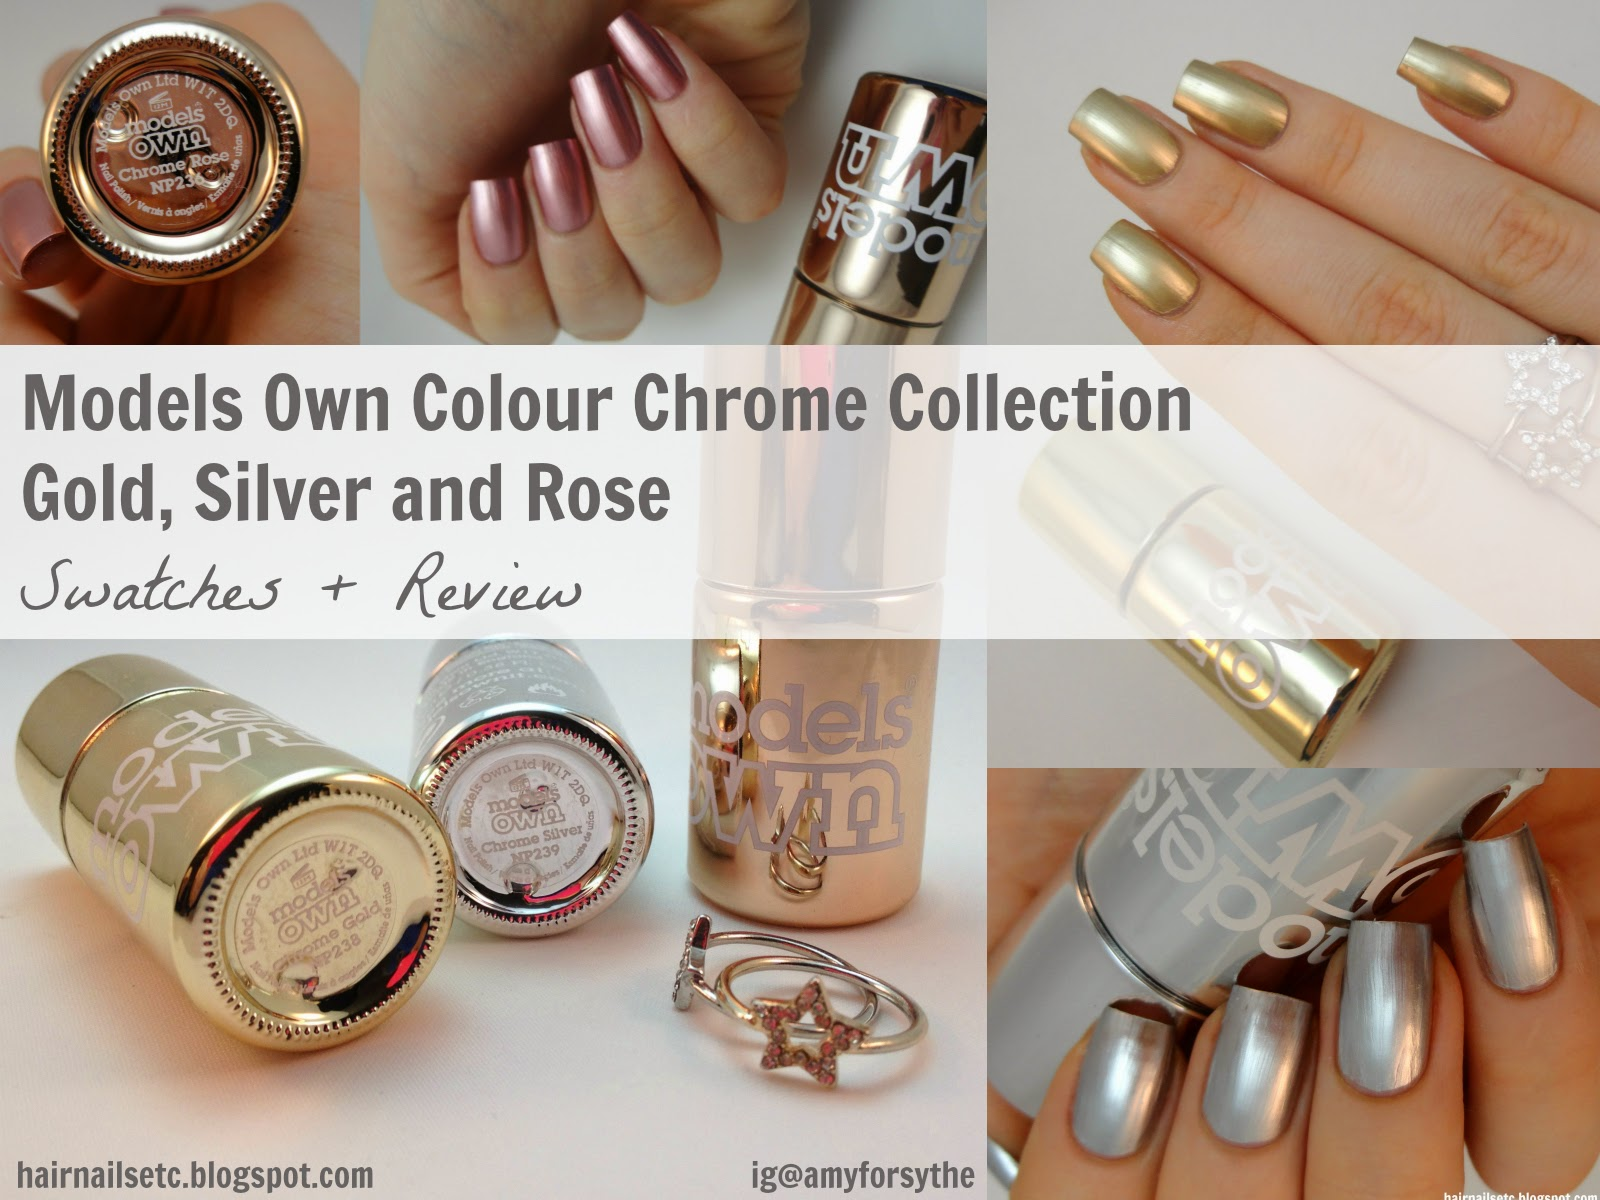 Models Own Colour Chrome Collection Swatches and Review